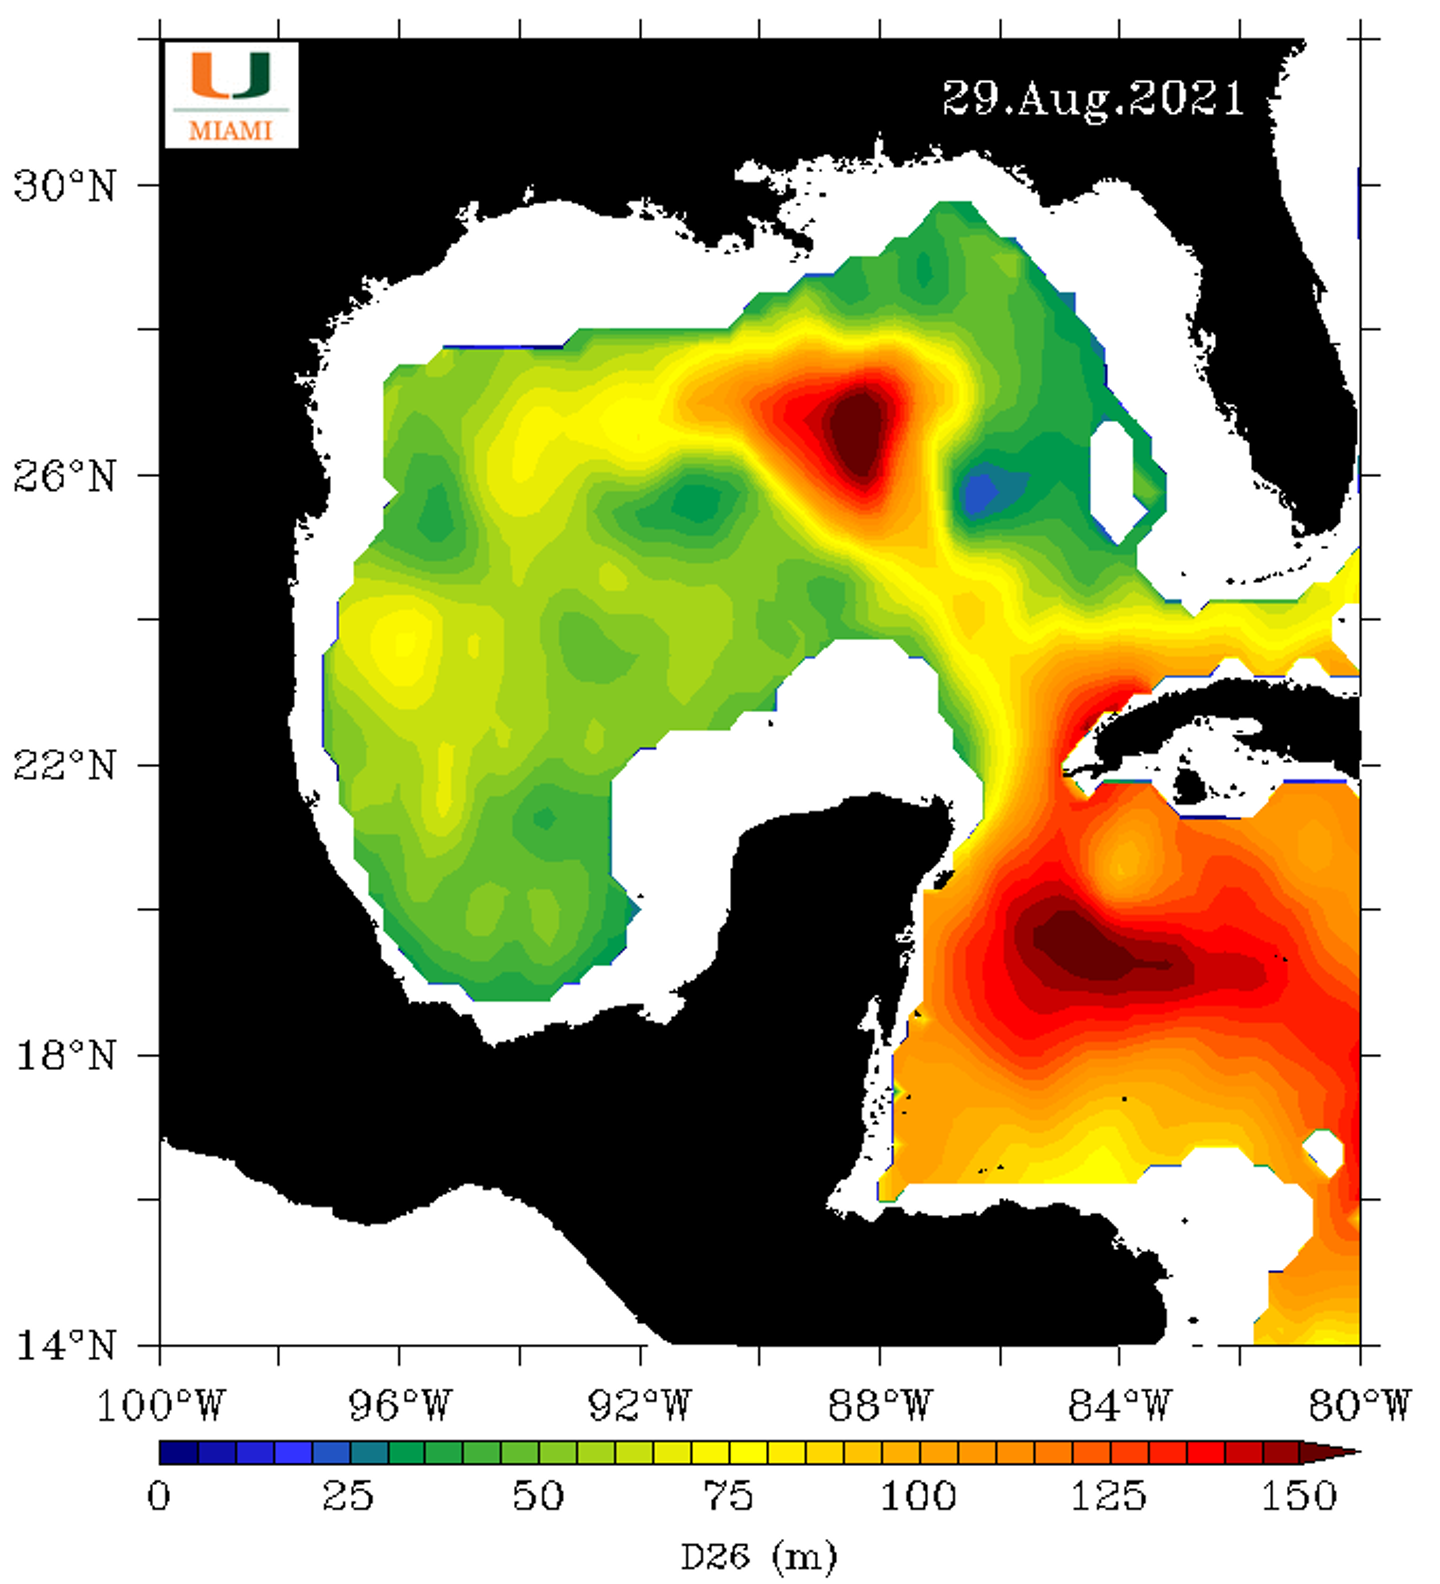 Map of surface temperatures.